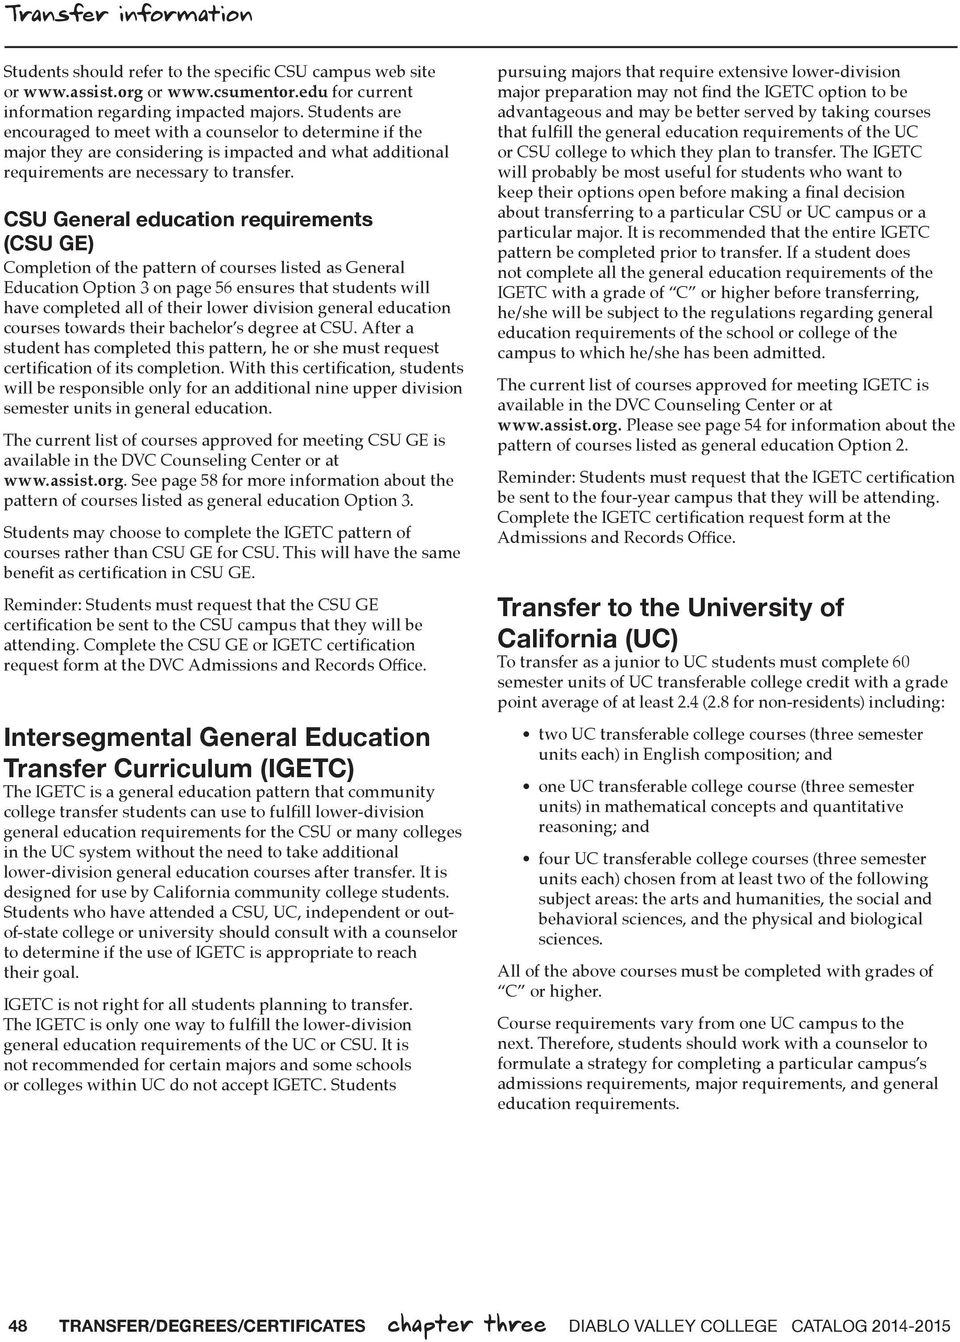 CSU General education requirements (CSU GE) Completion of the pattern of courses listed as General Education Option 3 on page 56 ensures that students will have completed all of their lower division